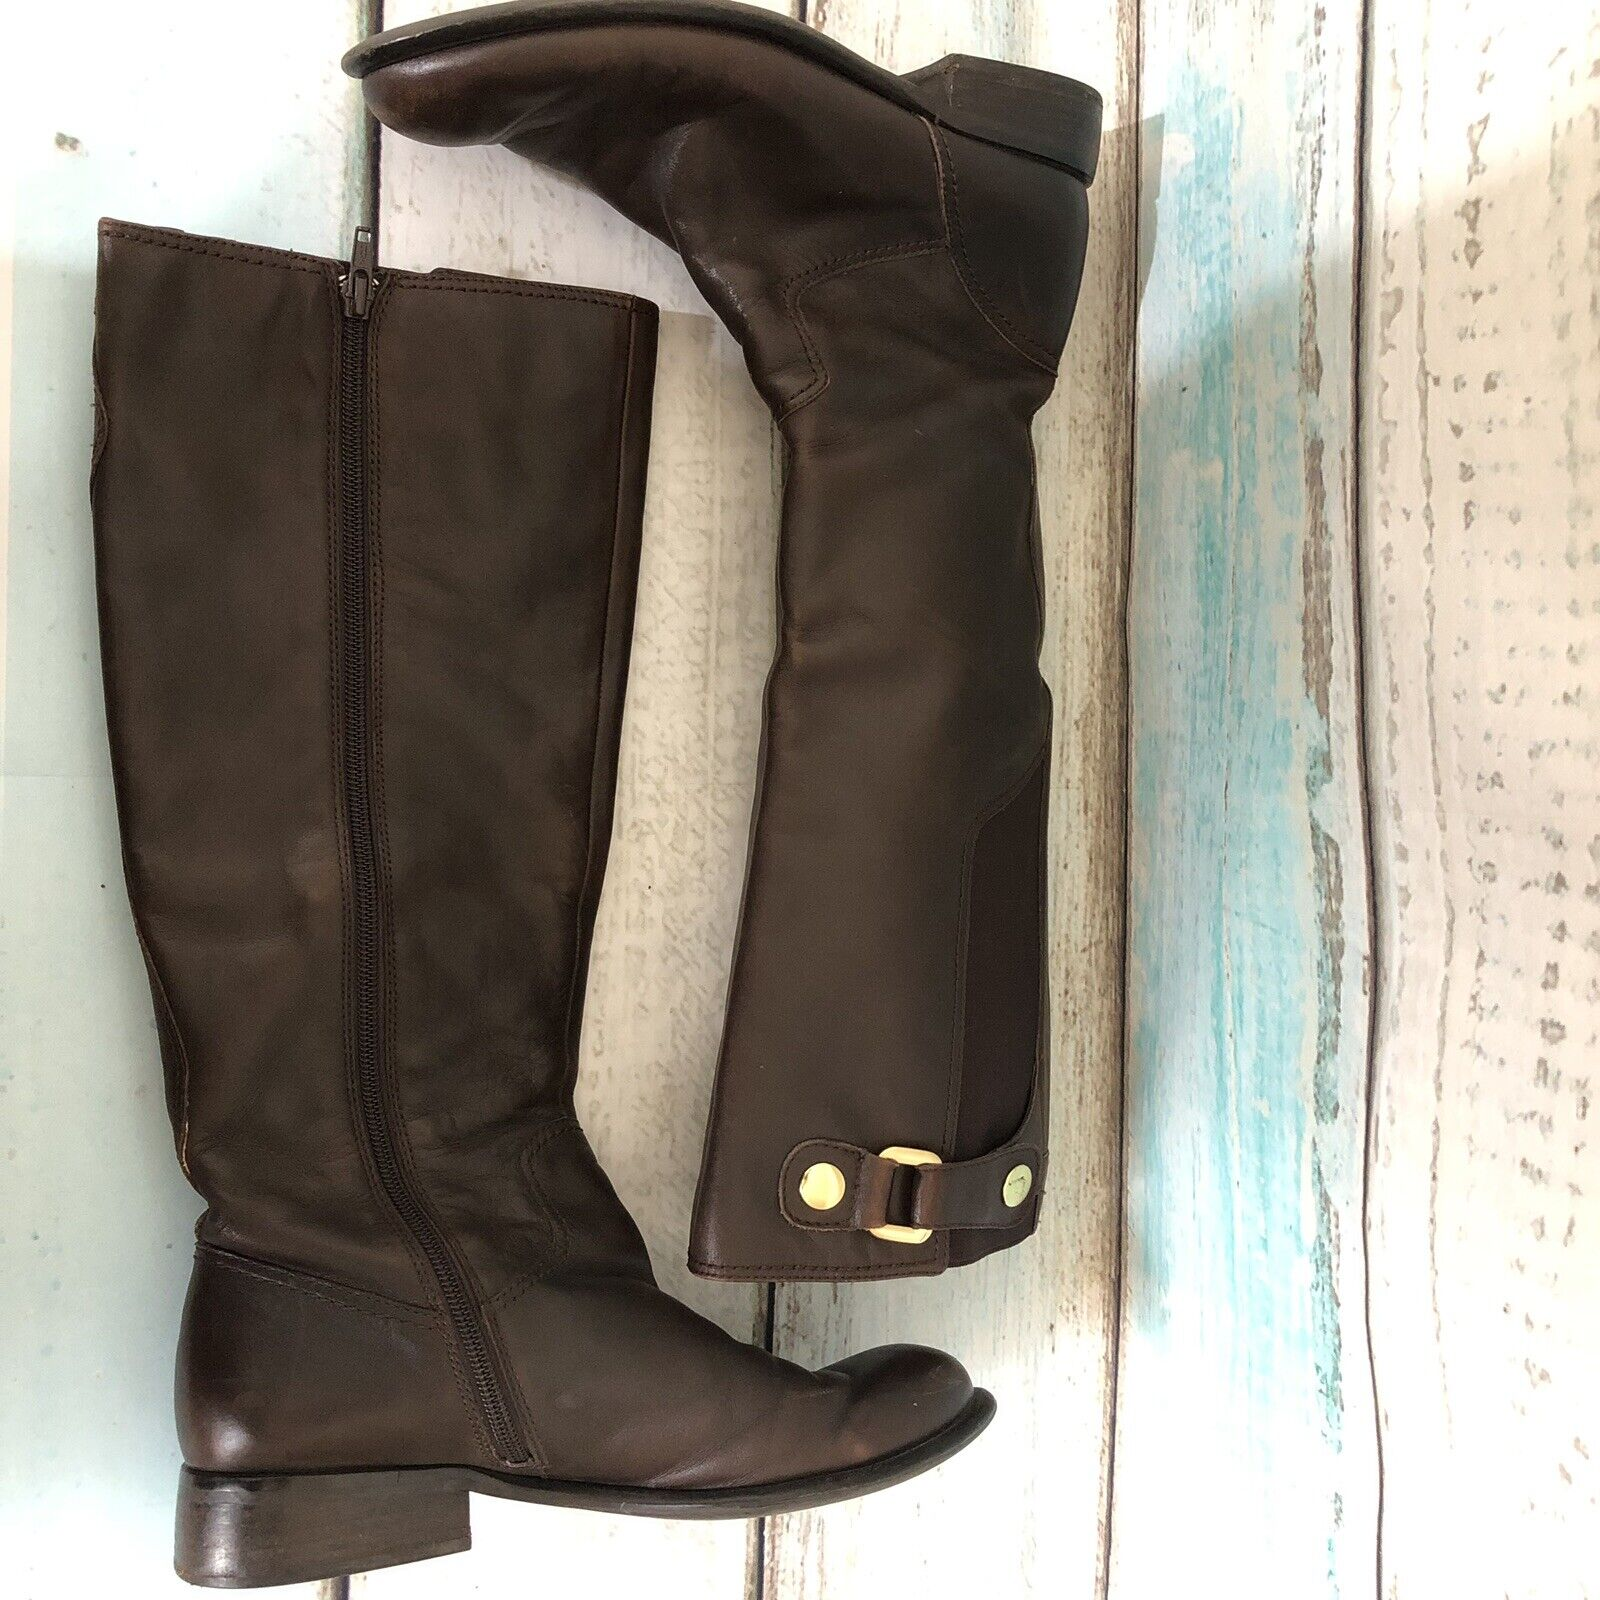 Franco Sarto Riding Boots Brown Leather Zip Knee High Style L-Ranger Size 7m